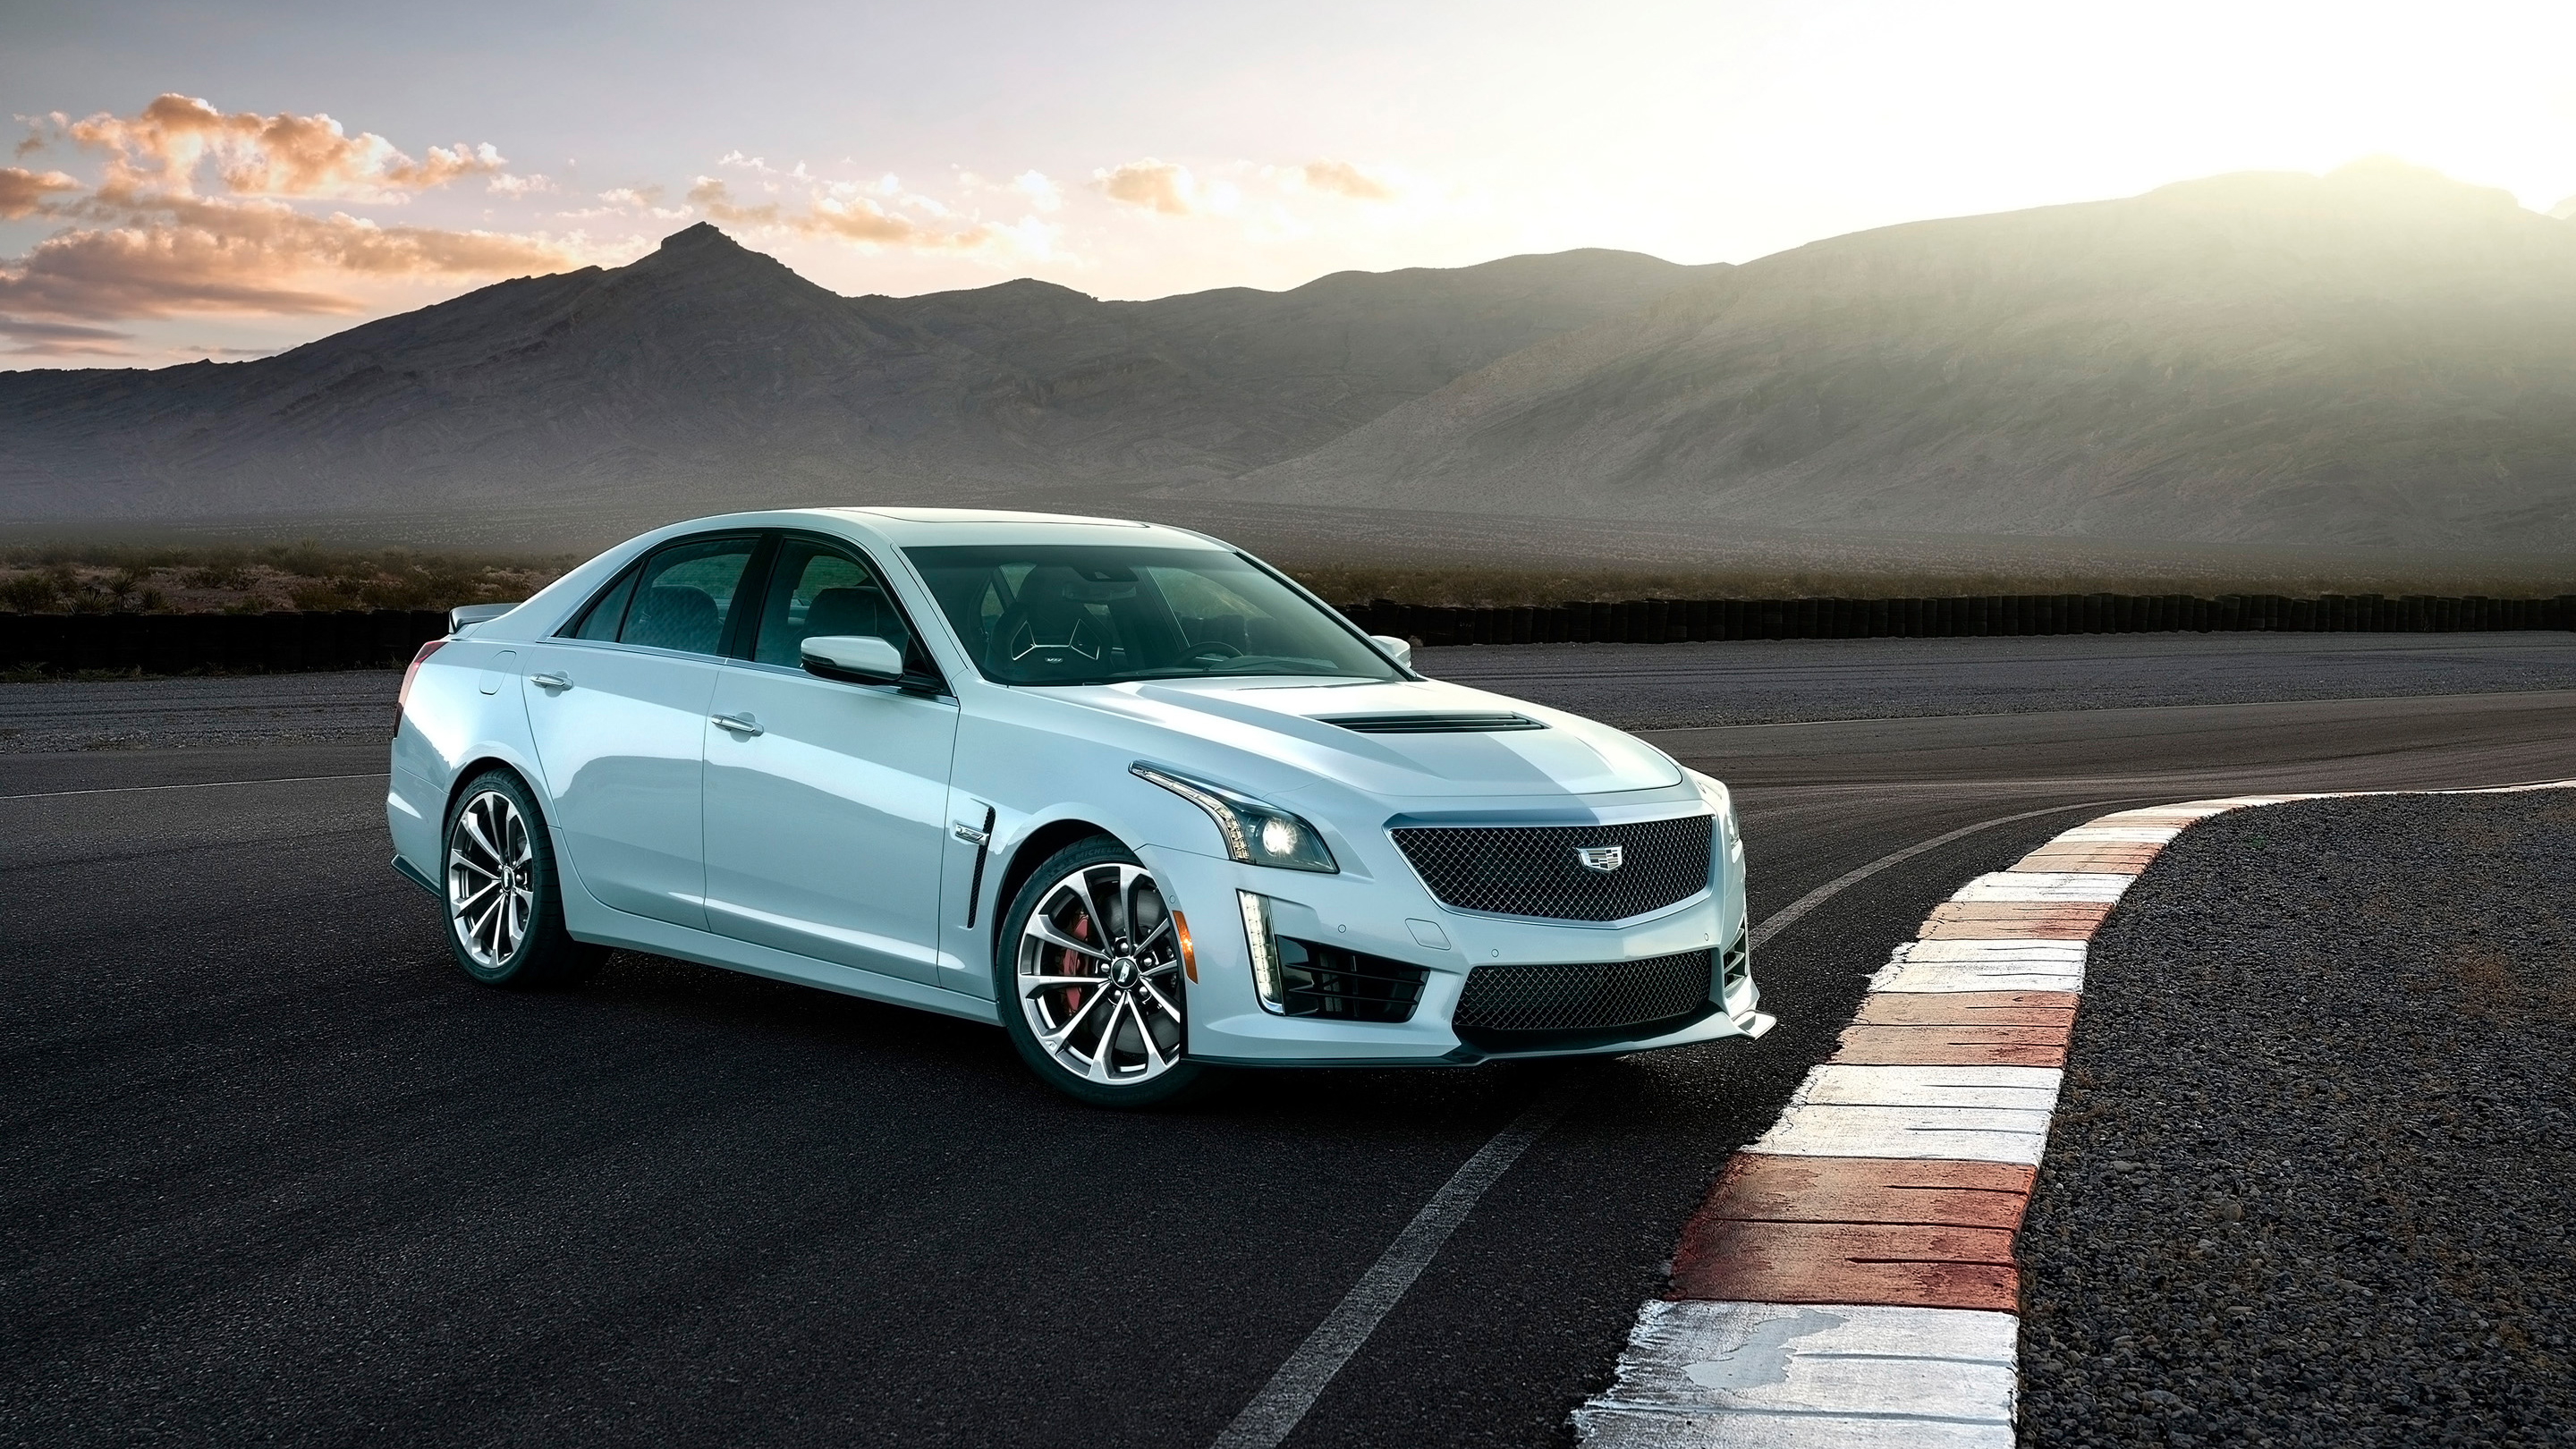 2018 Cadillac CTS V Glacier Metallic Edition Wallpapers